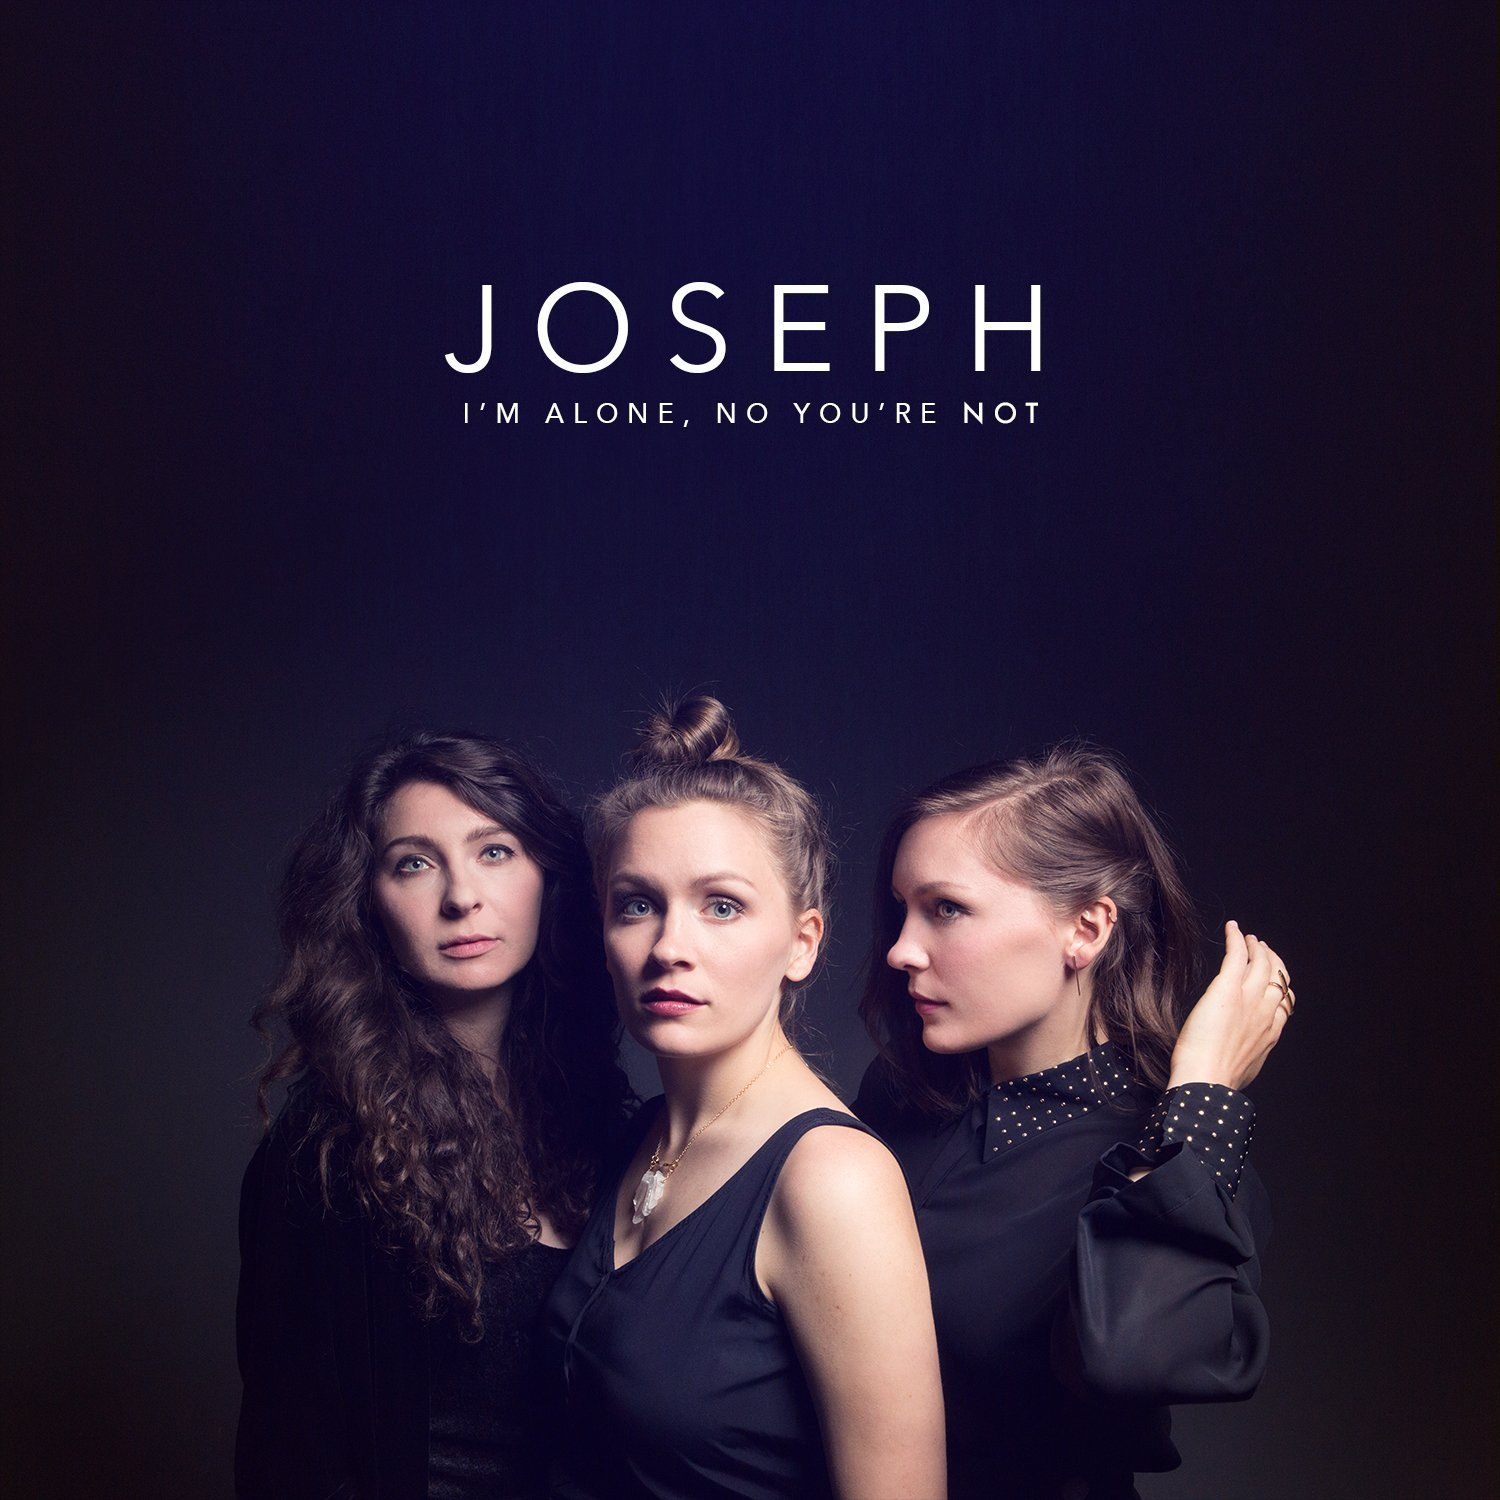 Joseph - I'm Alone, No You're Not